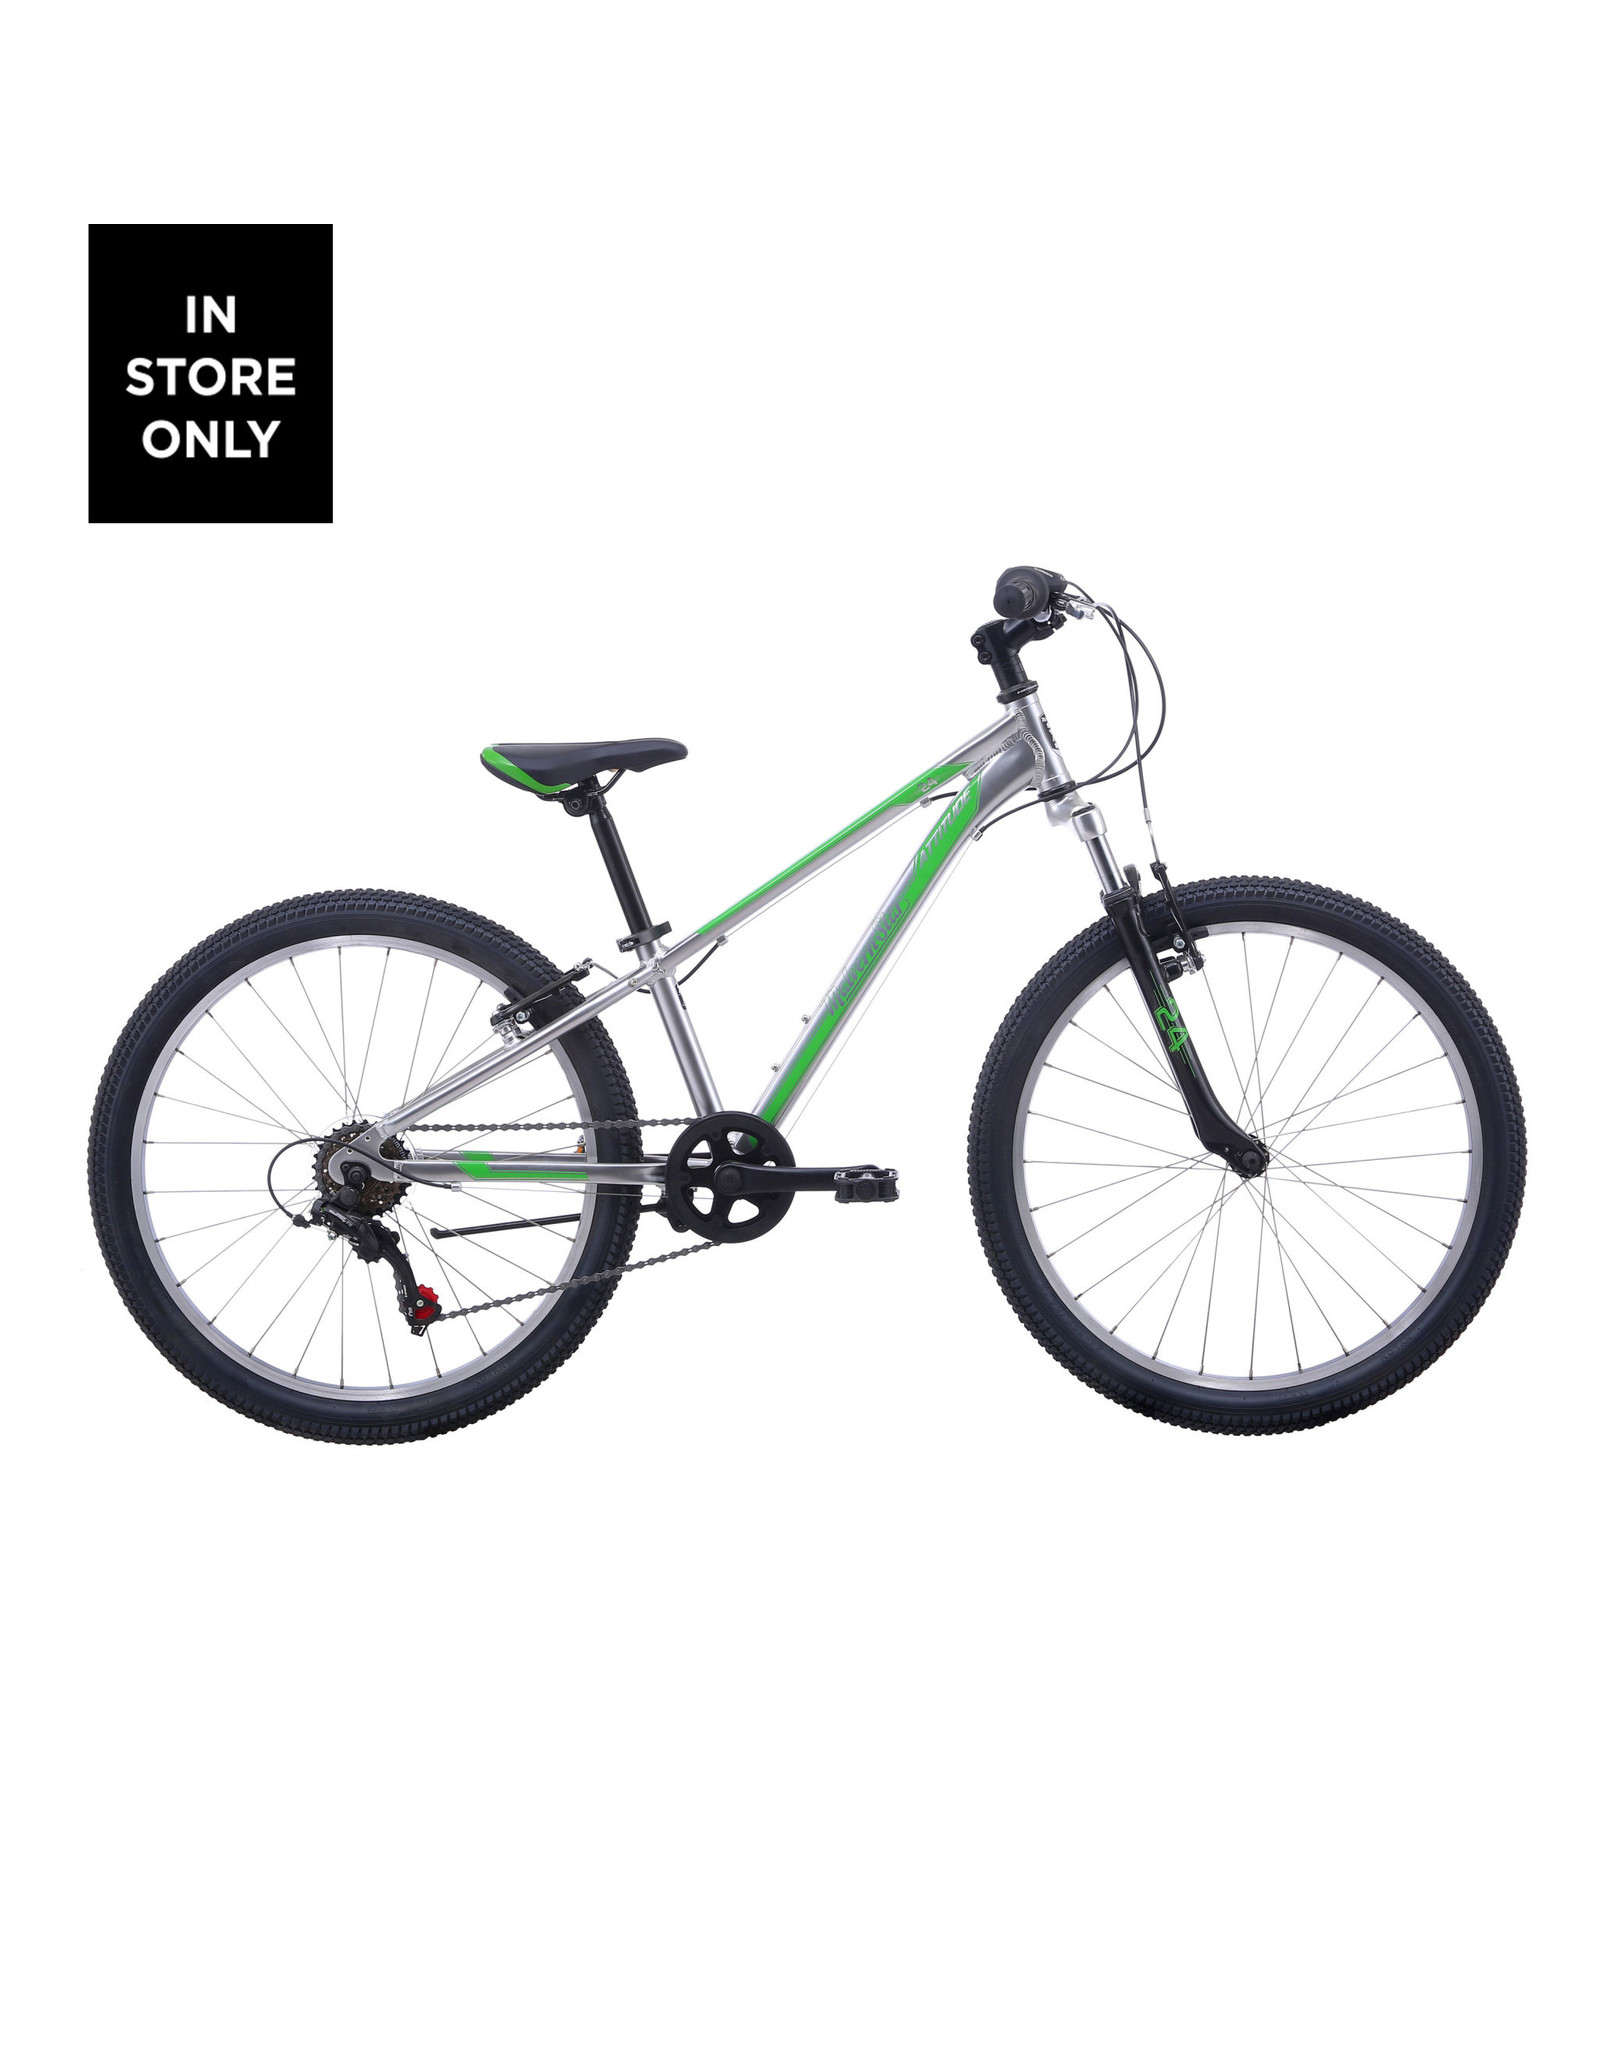 "MALVERN STAR MVS ATTITUDE 24"" GREY/LIME"